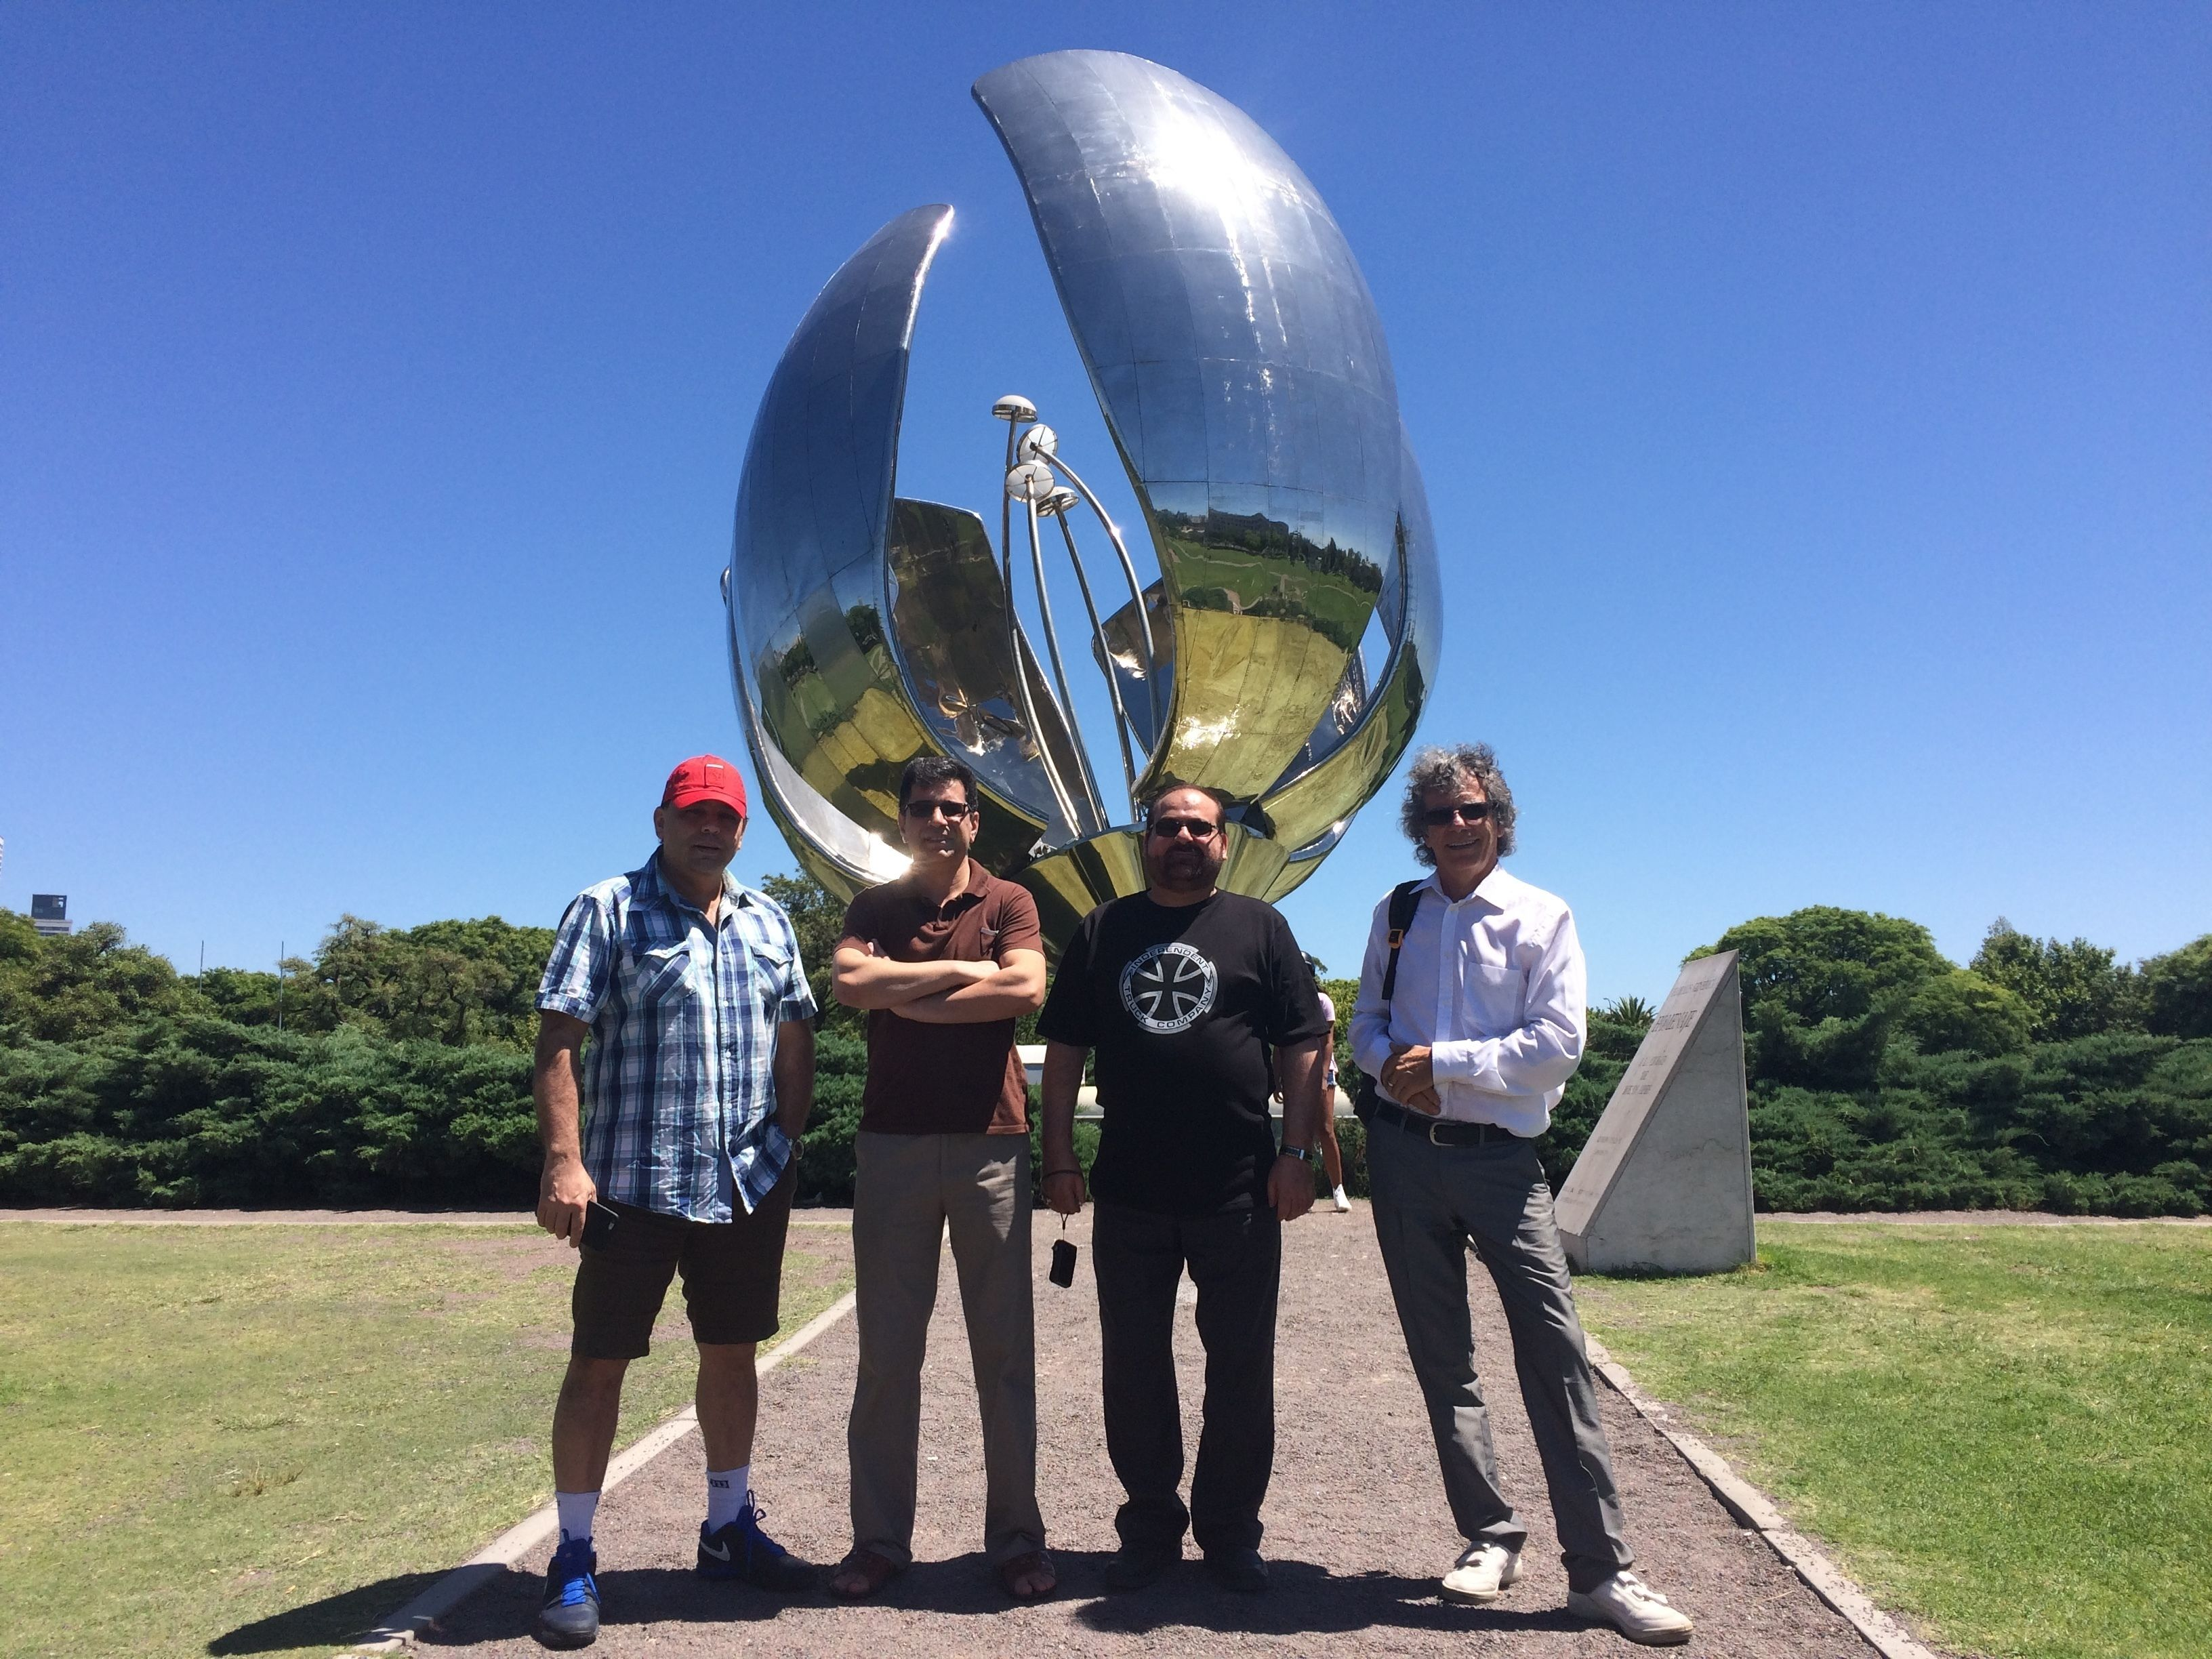 Group standing in front of giant artwork in Buenos Aires